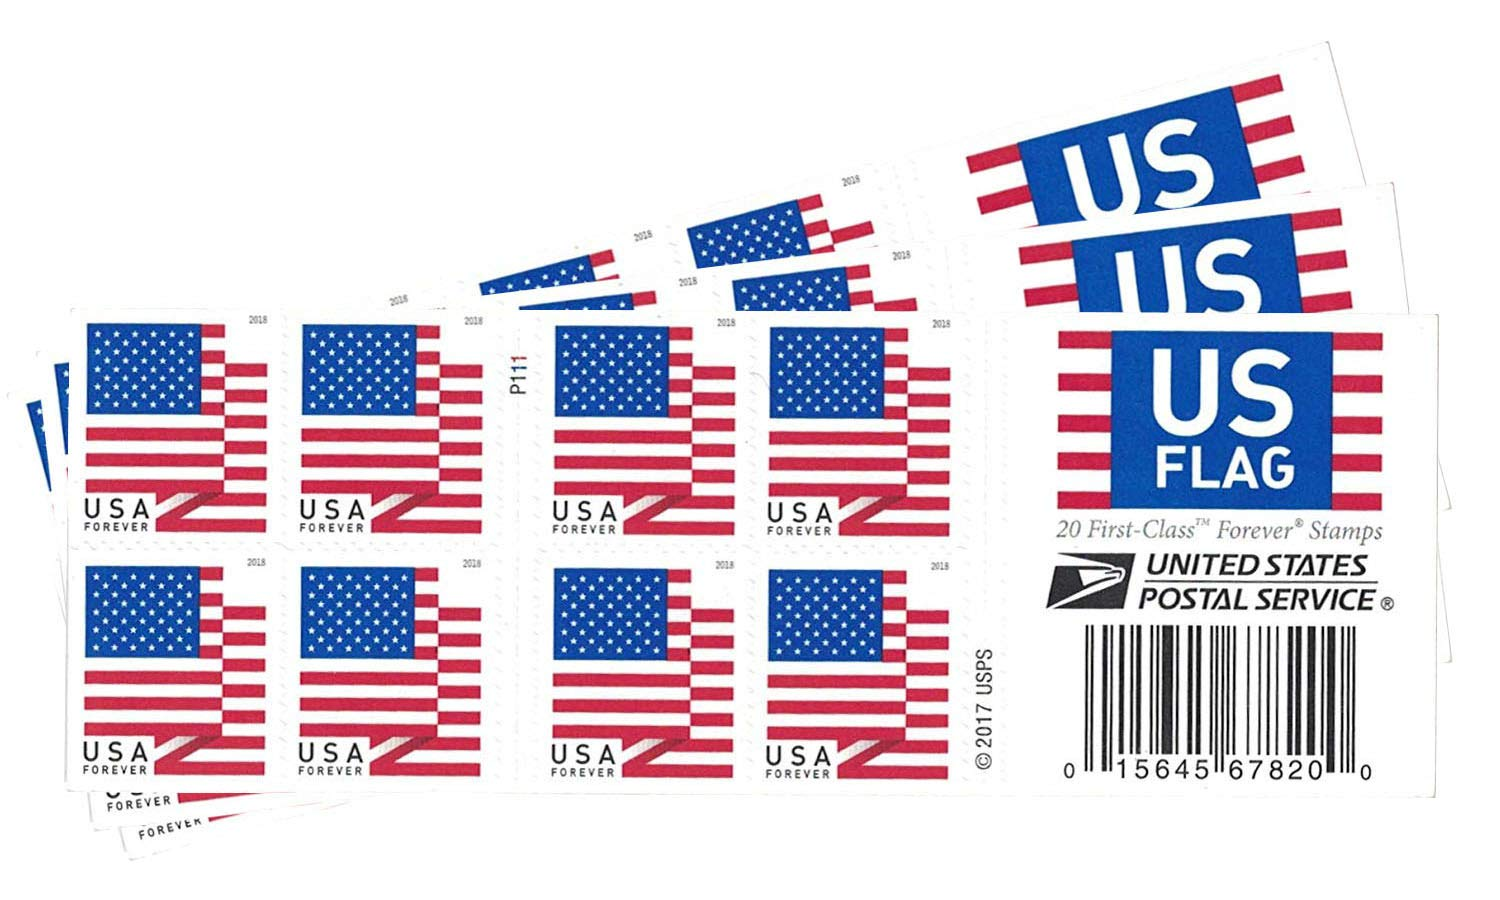 USPS US Flag 2018 Forever Stamps ((Book of 60))